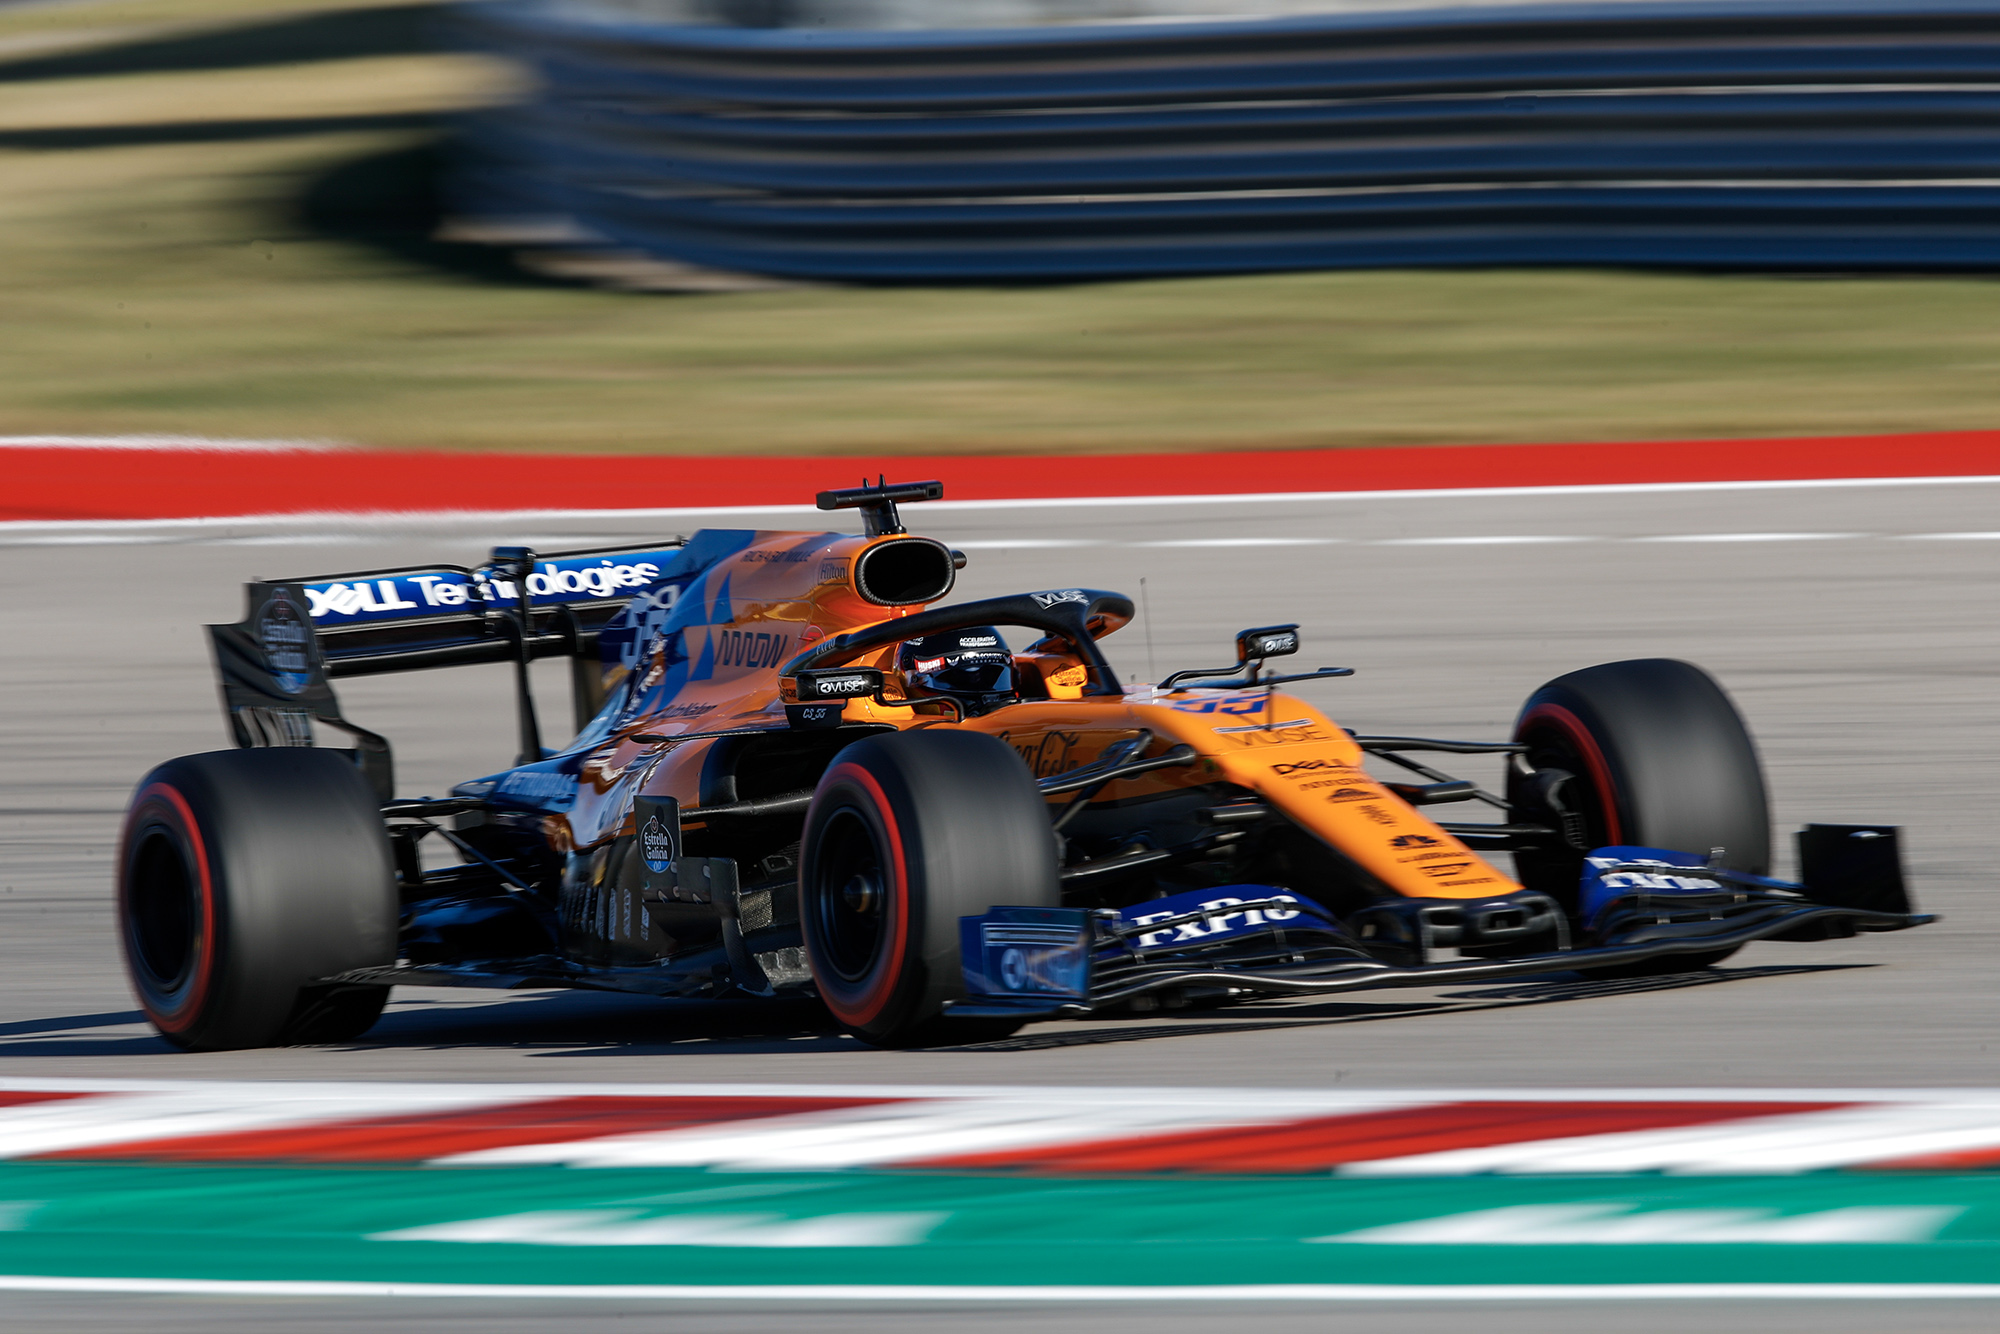 Carlos Sainz in his McLaren during qualifying for the 2019 United States Grand Prix